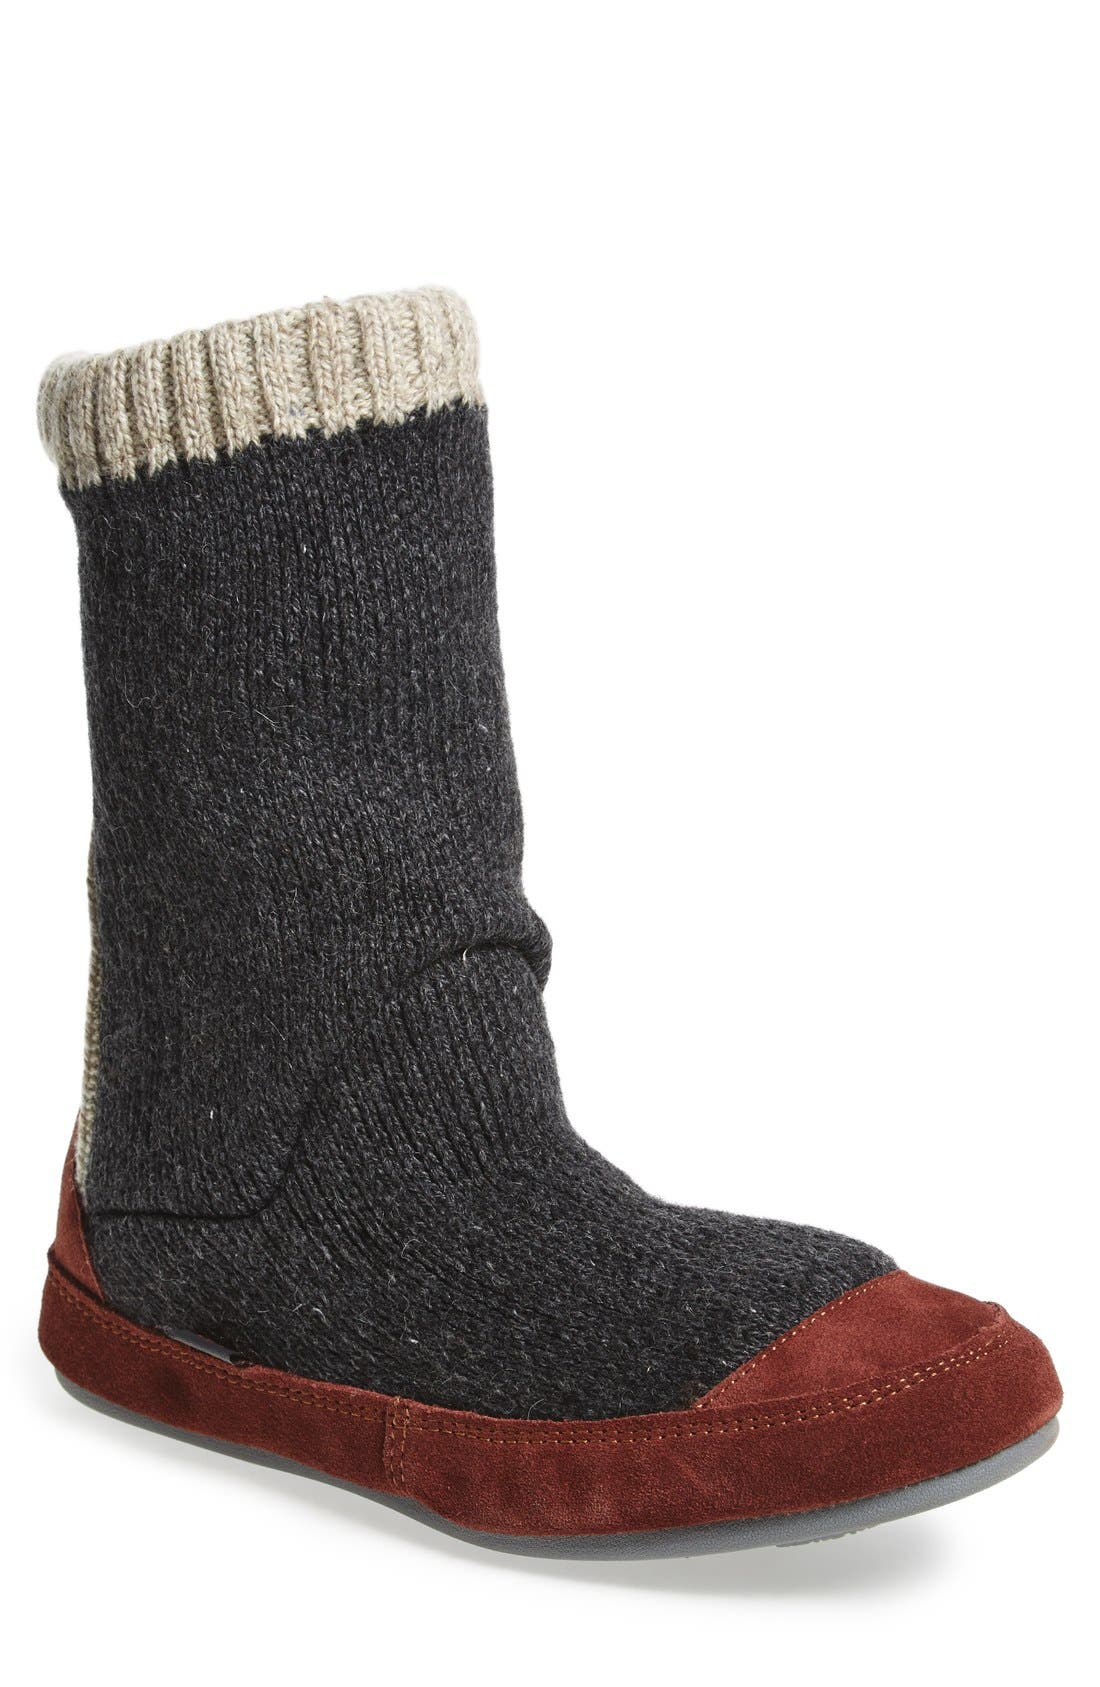 'Slouch Boot' Slipper,                             Main thumbnail 1, color,